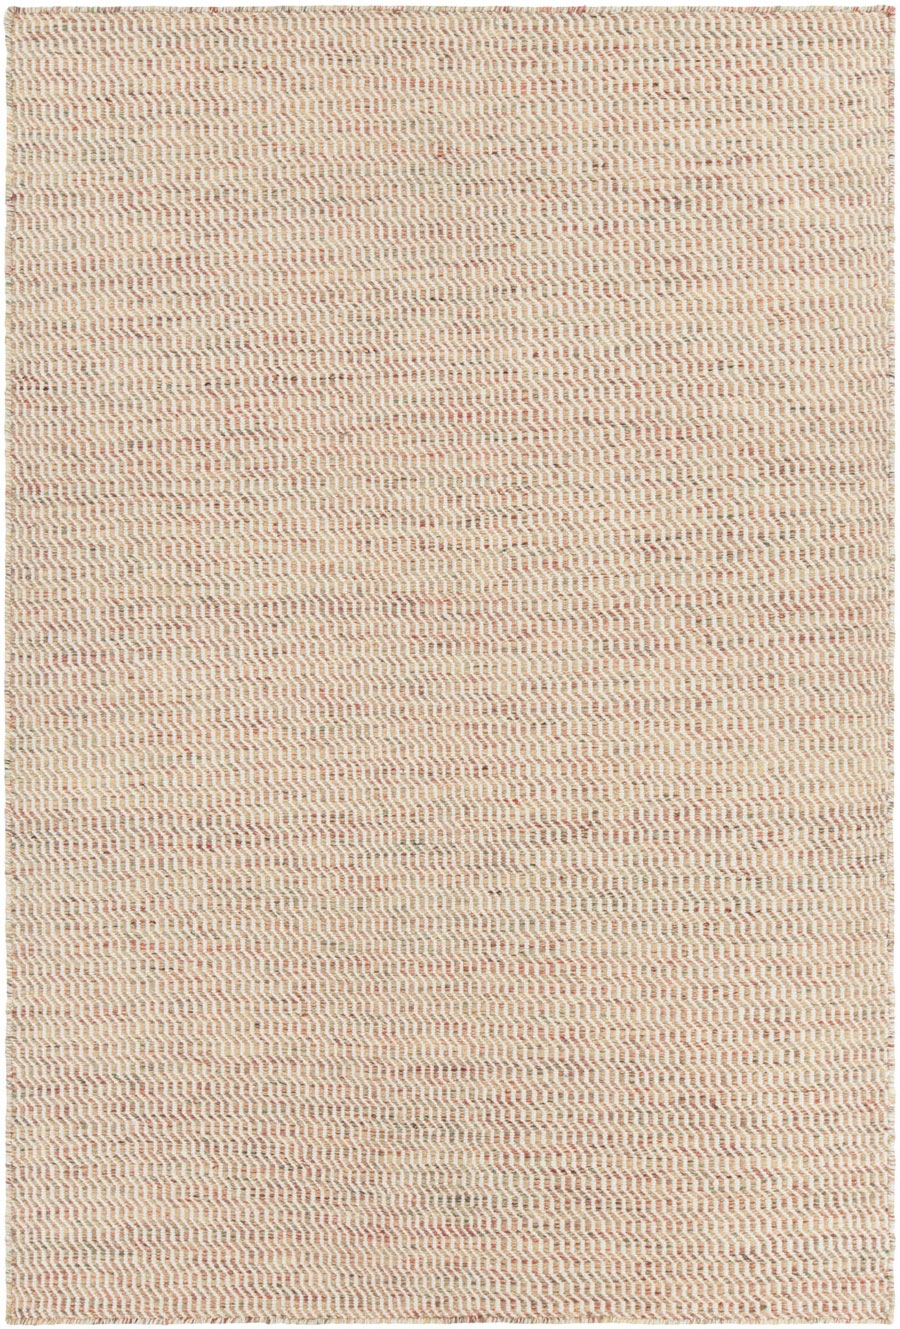 Chandra Crest CRE33500 Area Rug